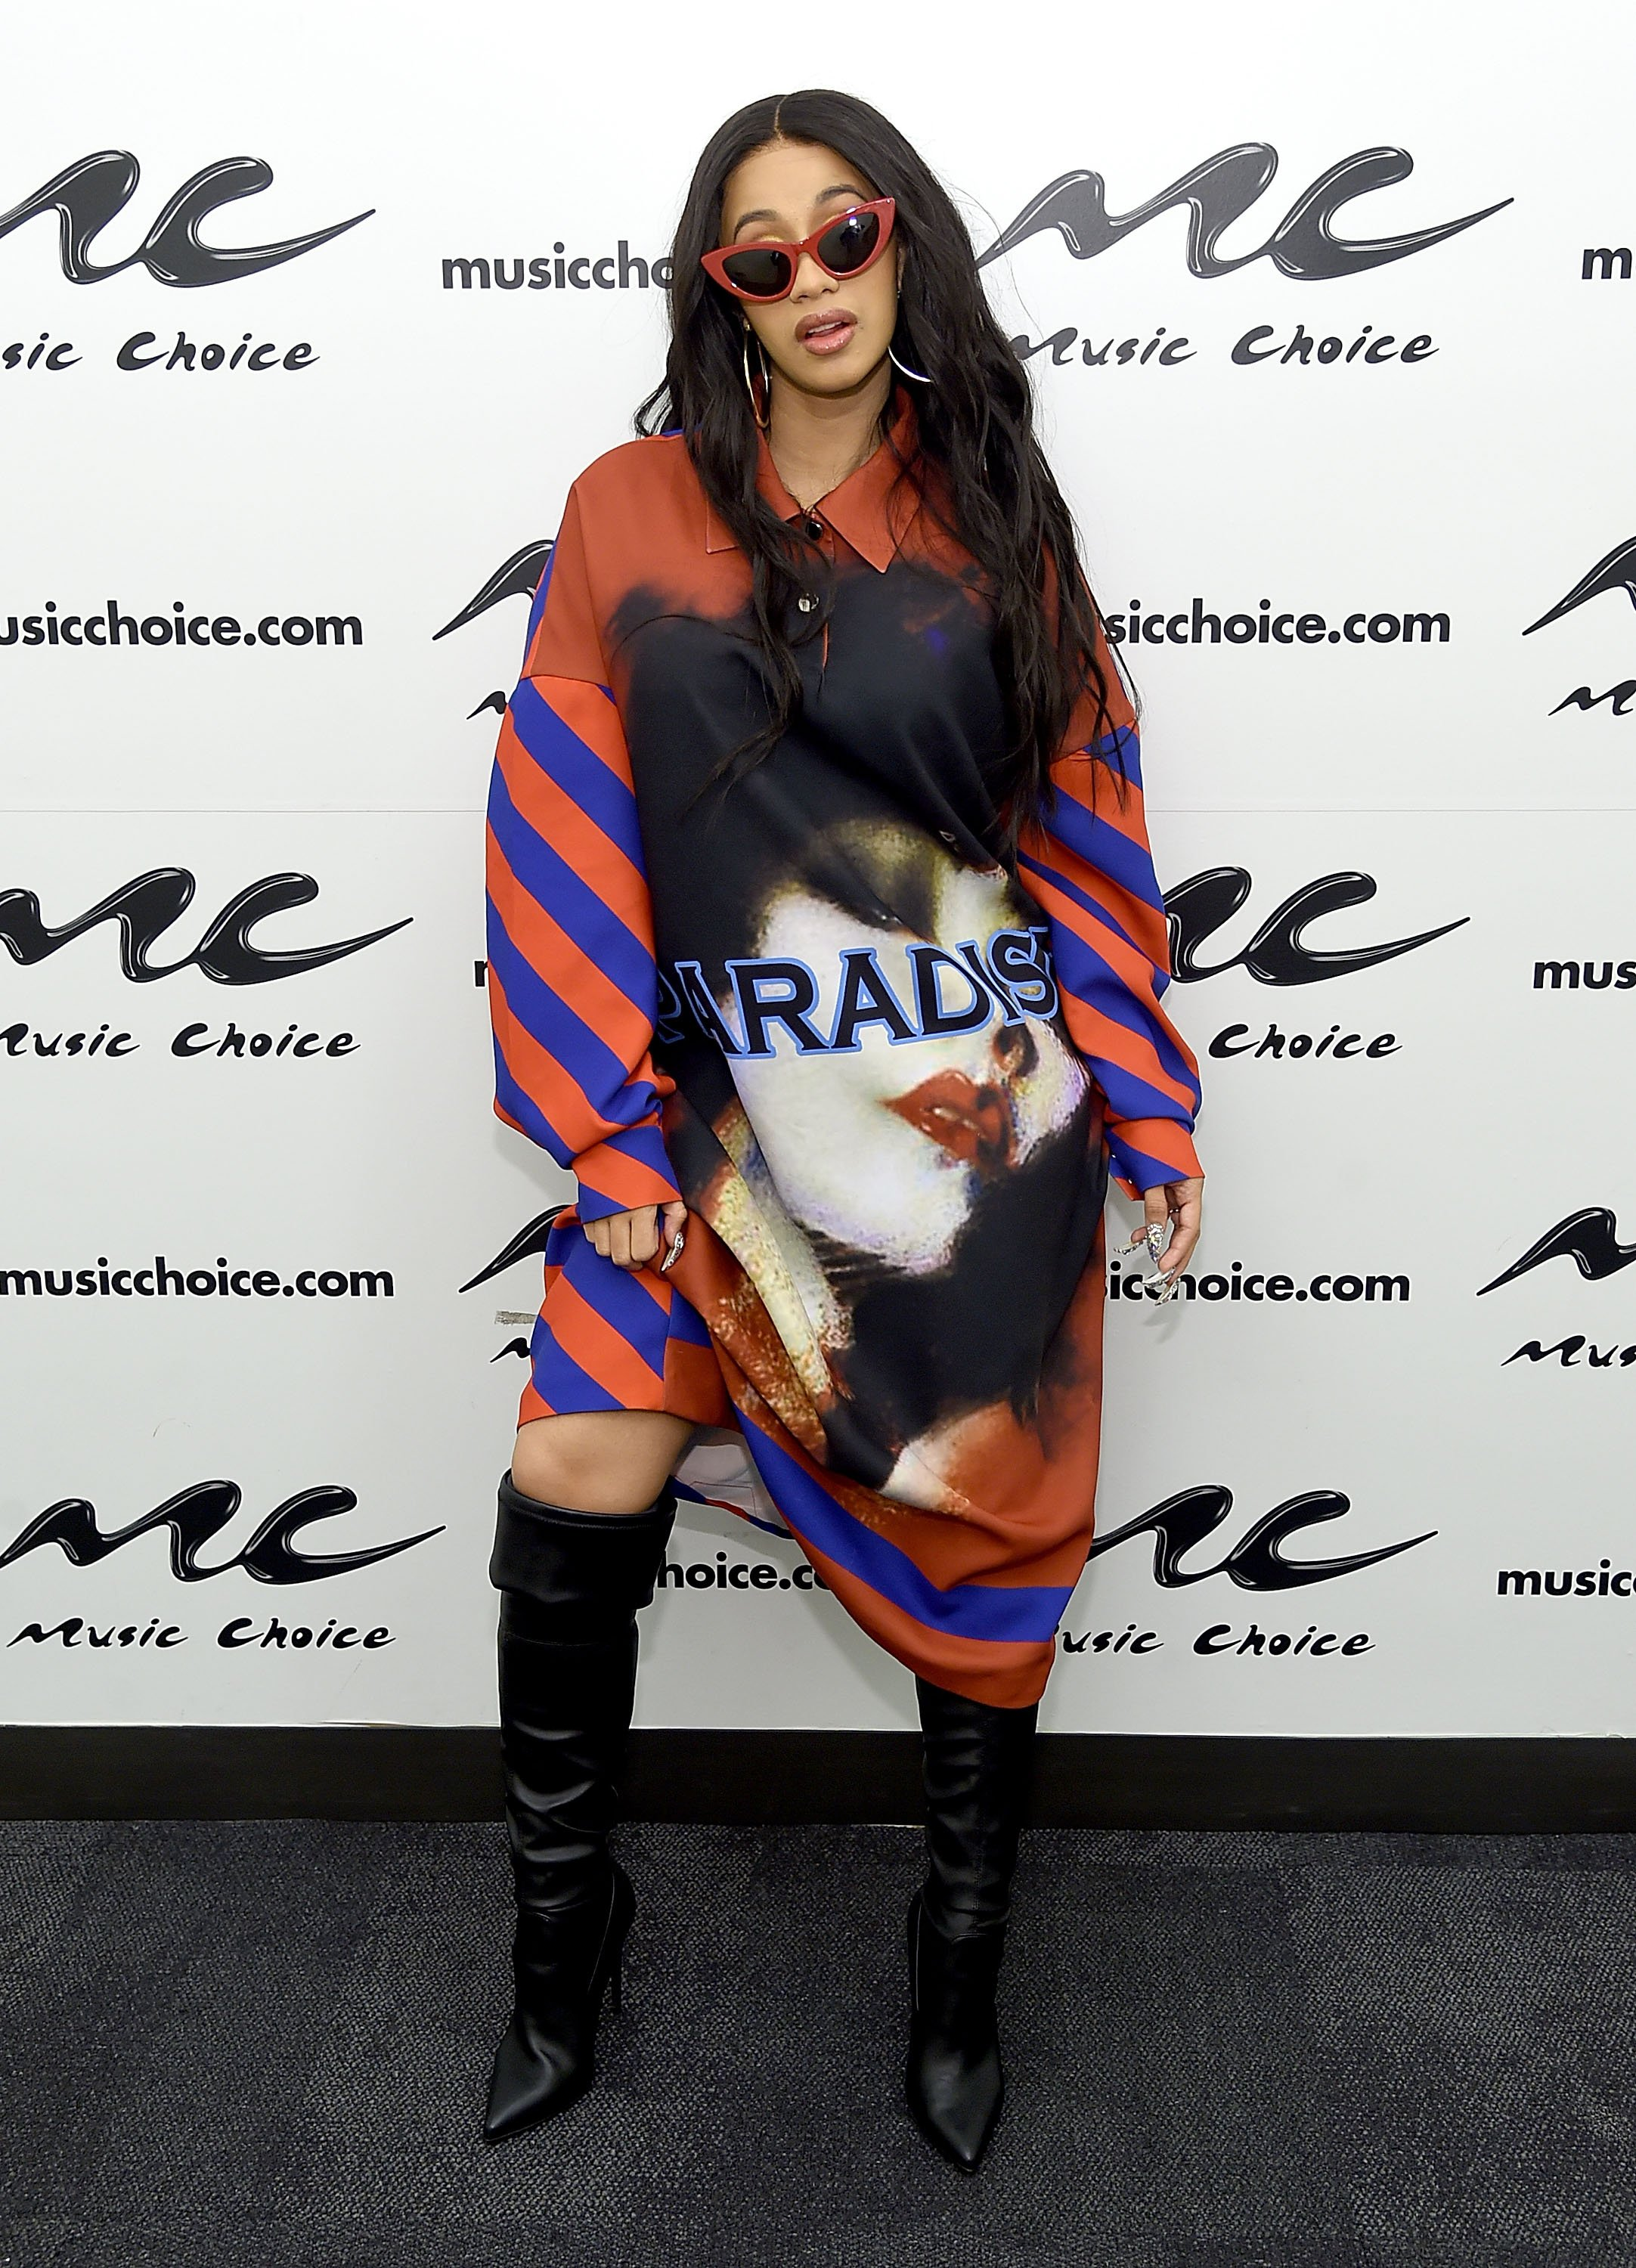 Cardi B visits Music Choice at Music Choice on April 10, 2018 in New York City | Photo: Getty Images